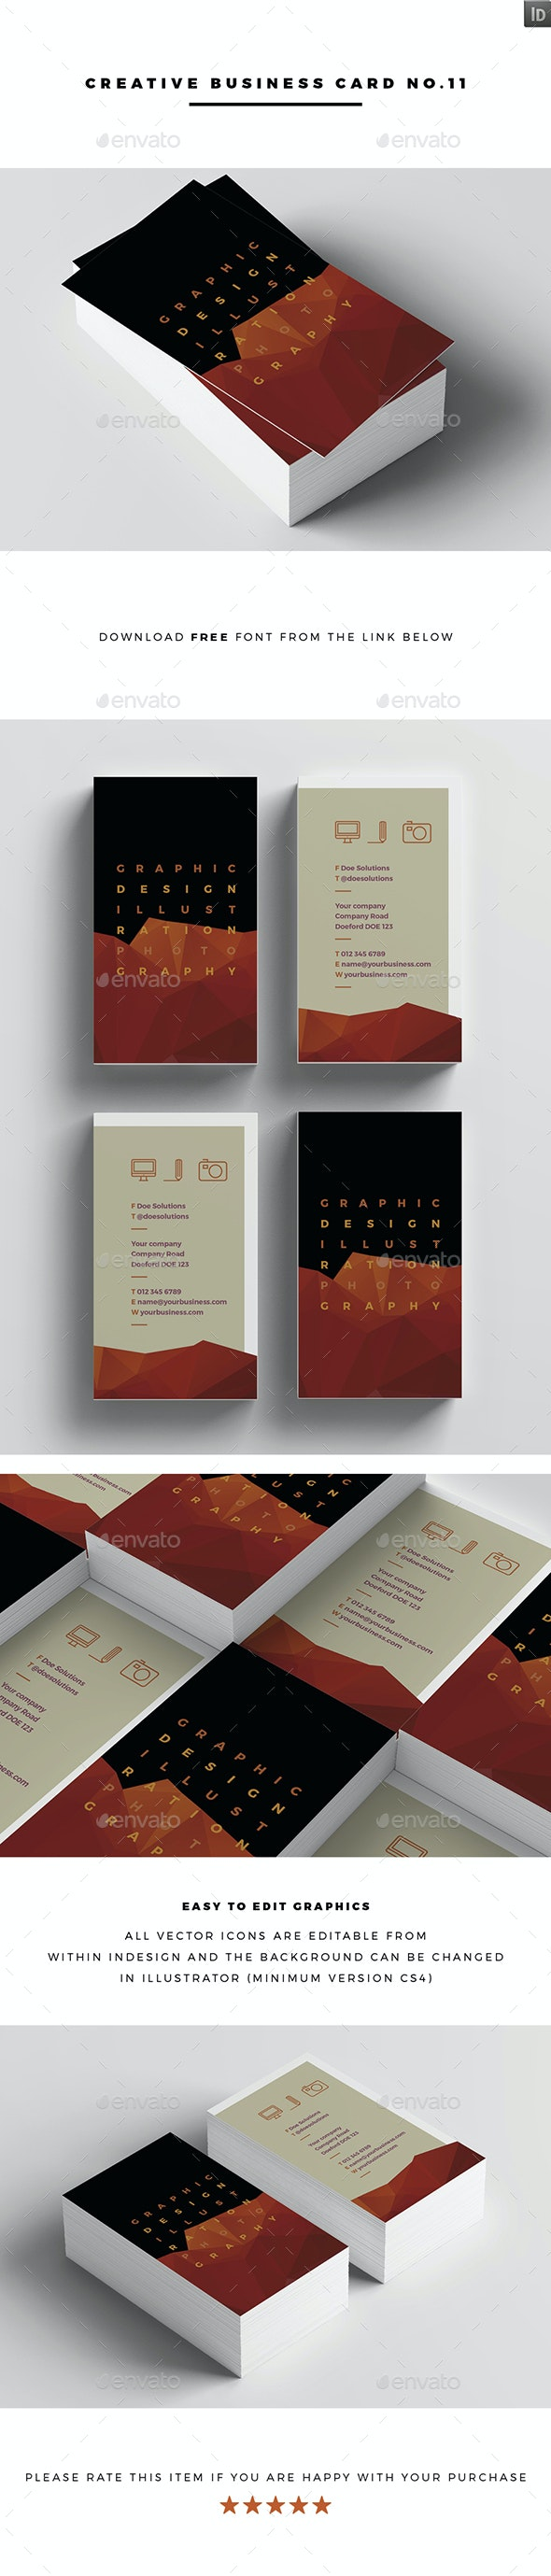 Creative Business Card No.11 - Business Cards Print Templates